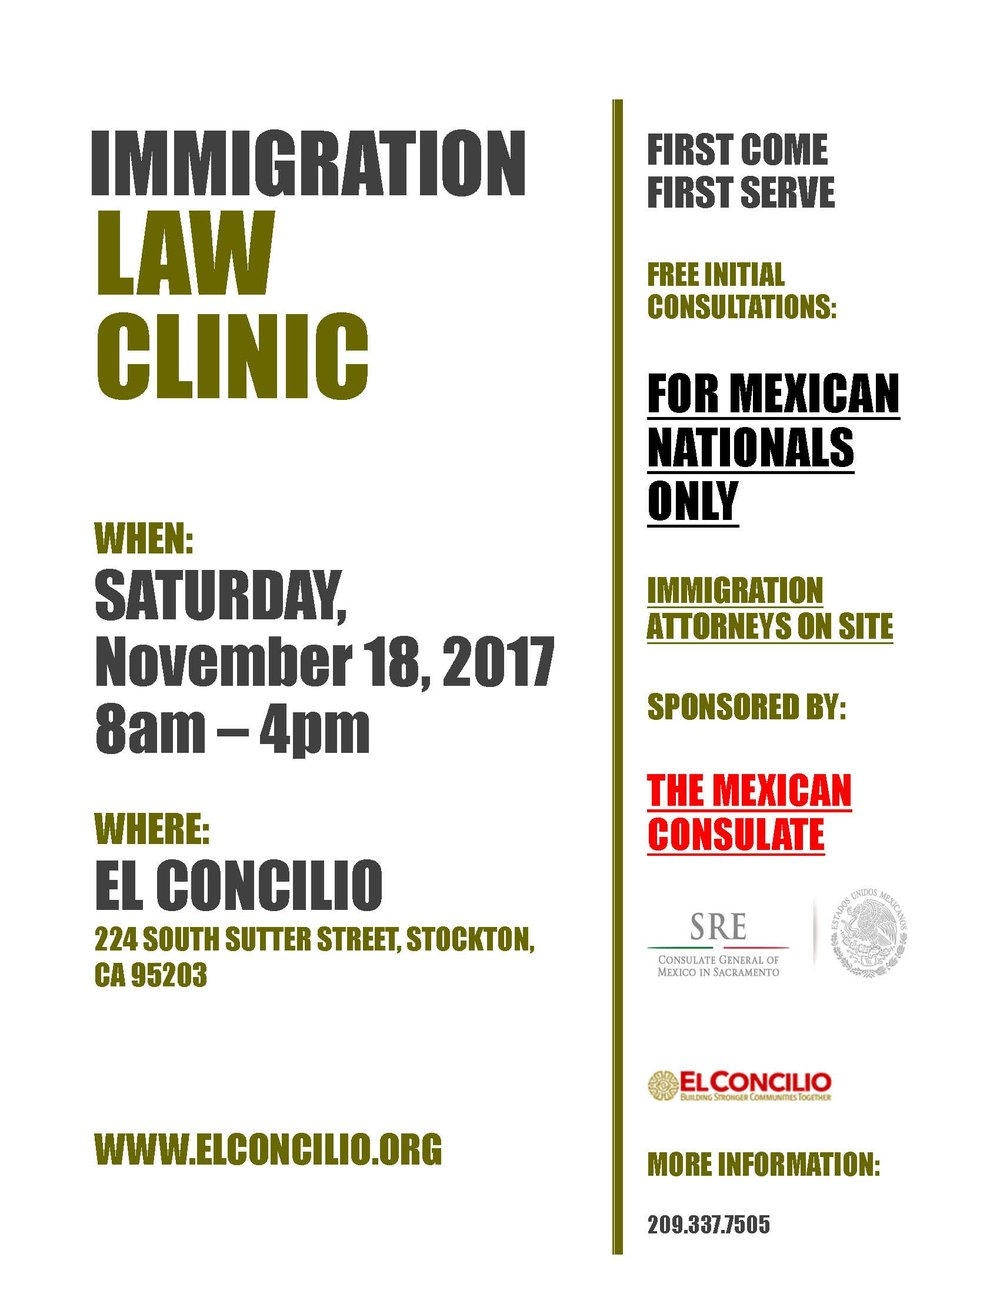 Immigration Law Clinic English & Spanish_Page_1.jpg